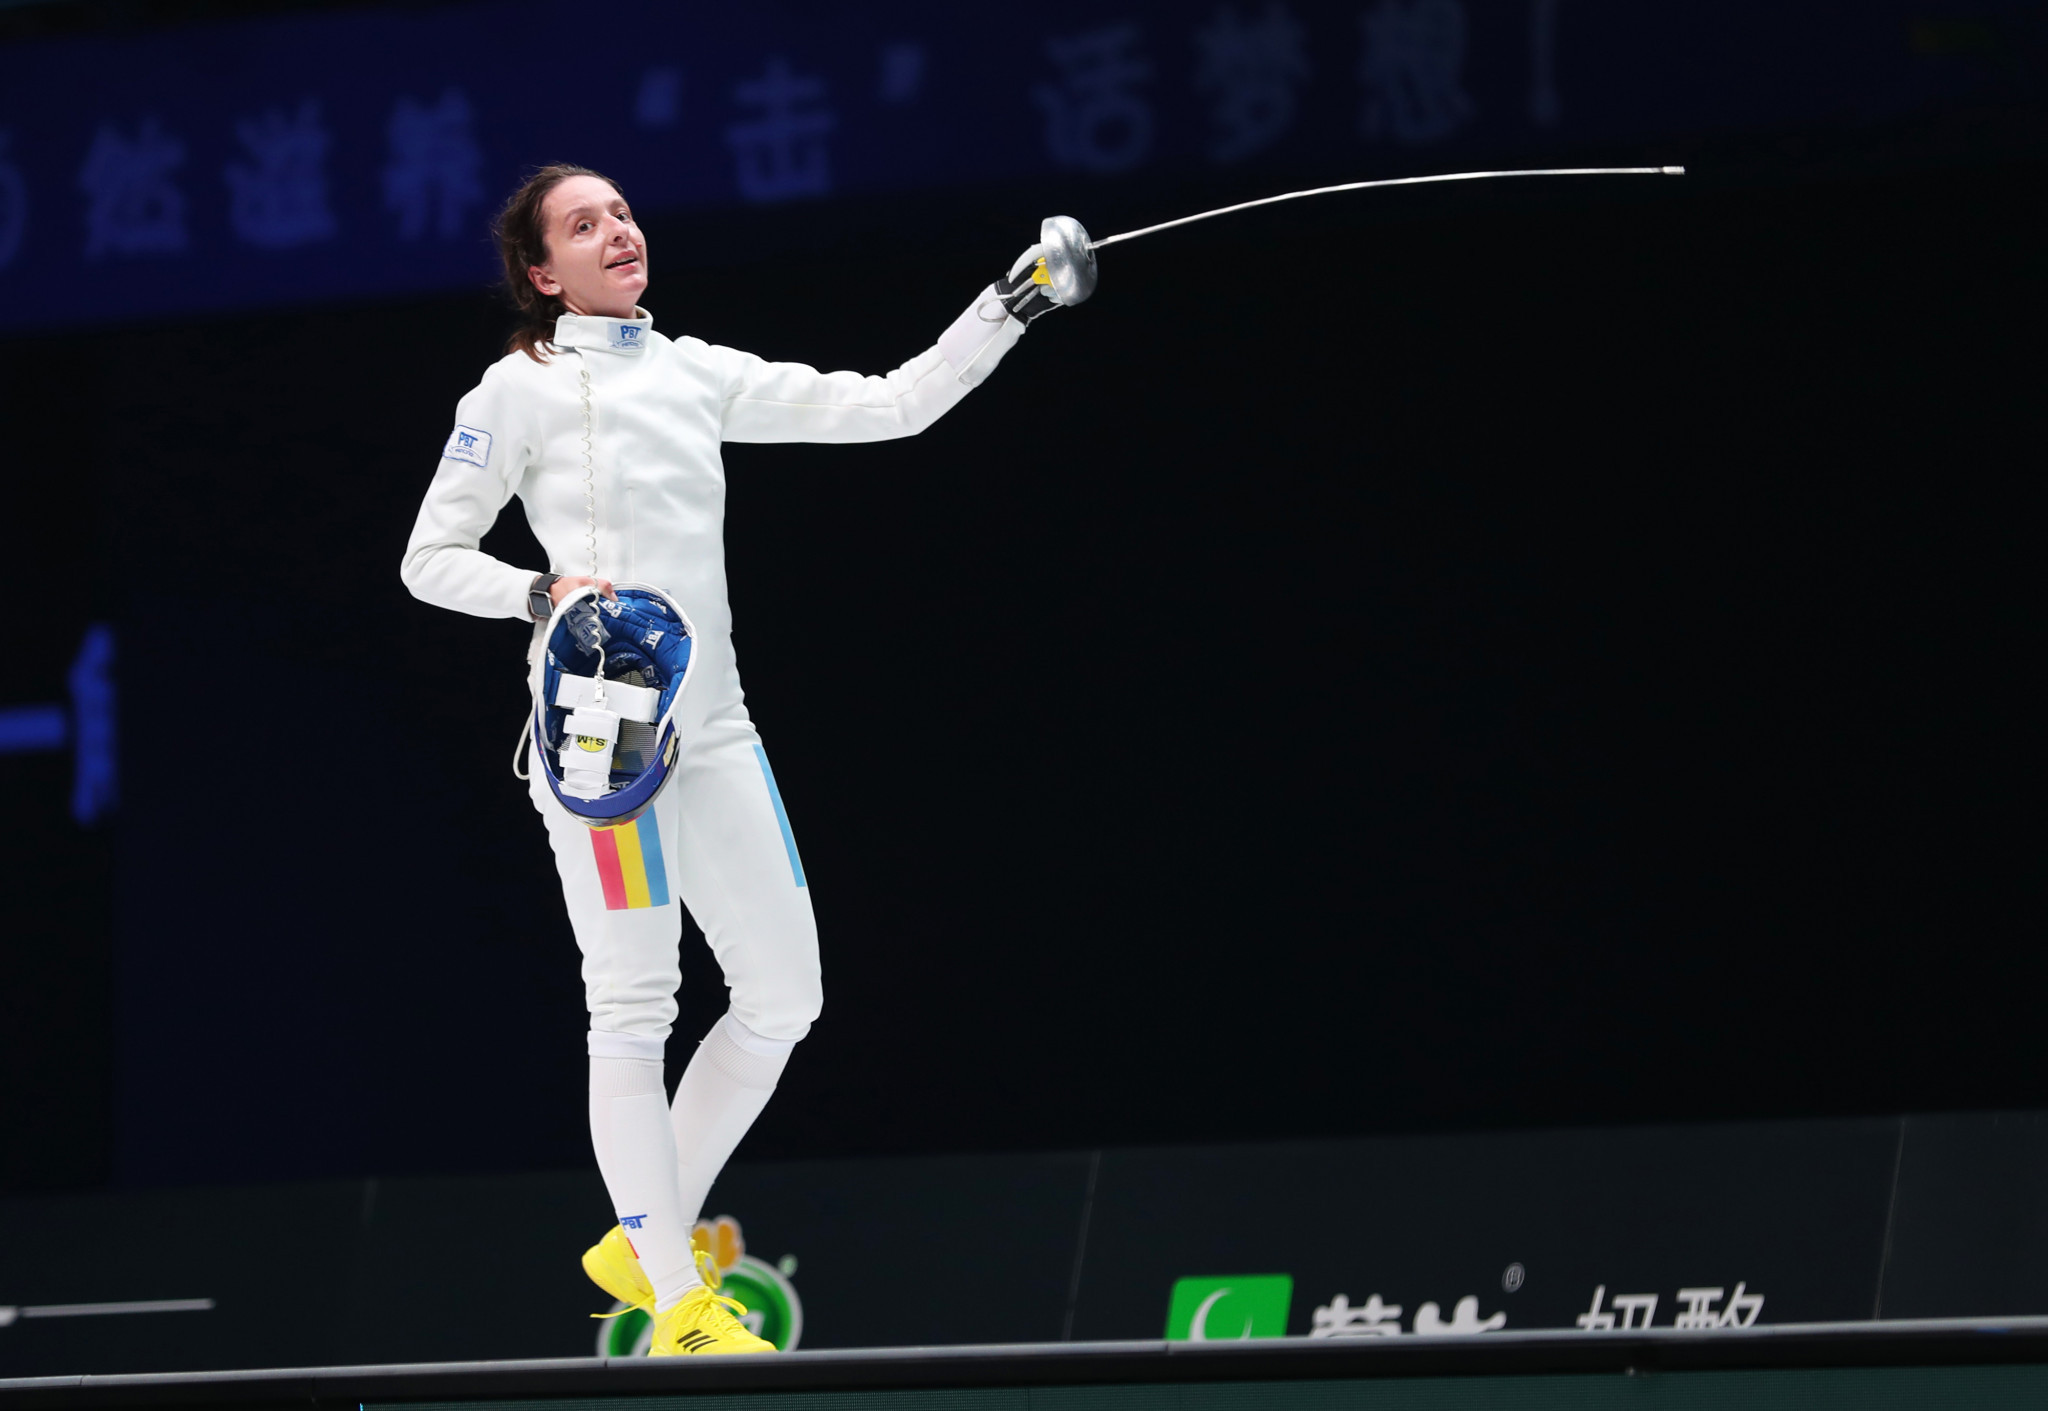 Ana Maria Popescu of Romania will be looking to defend her Olympic title in the women's individual epee ©Getty Images